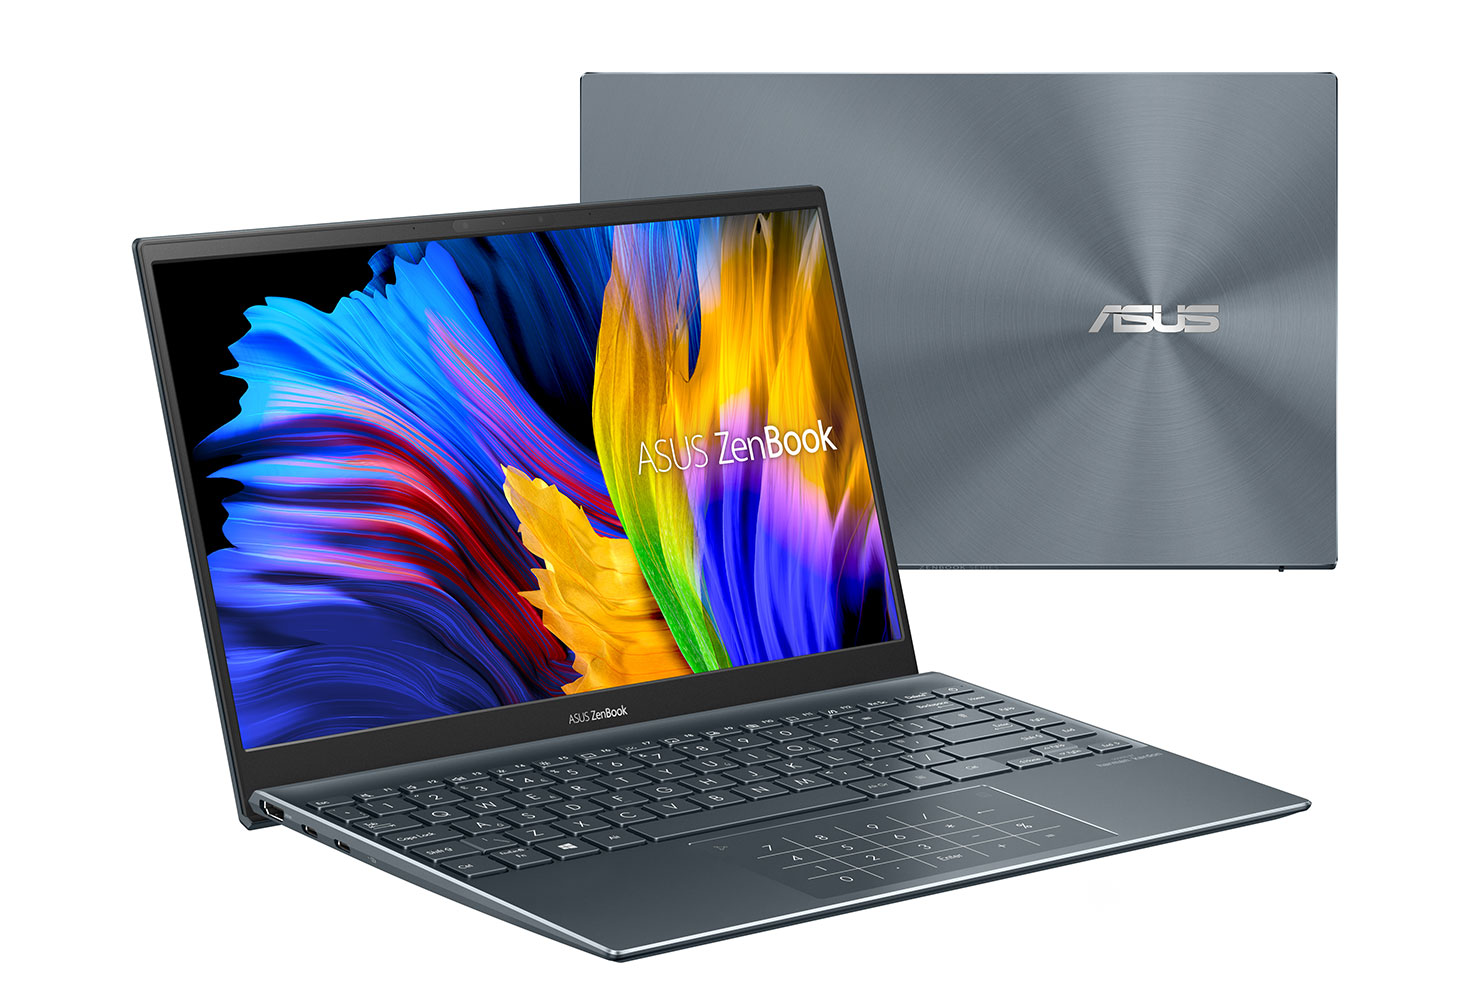 Asus' new Zenbook laptops continue the double-display trend